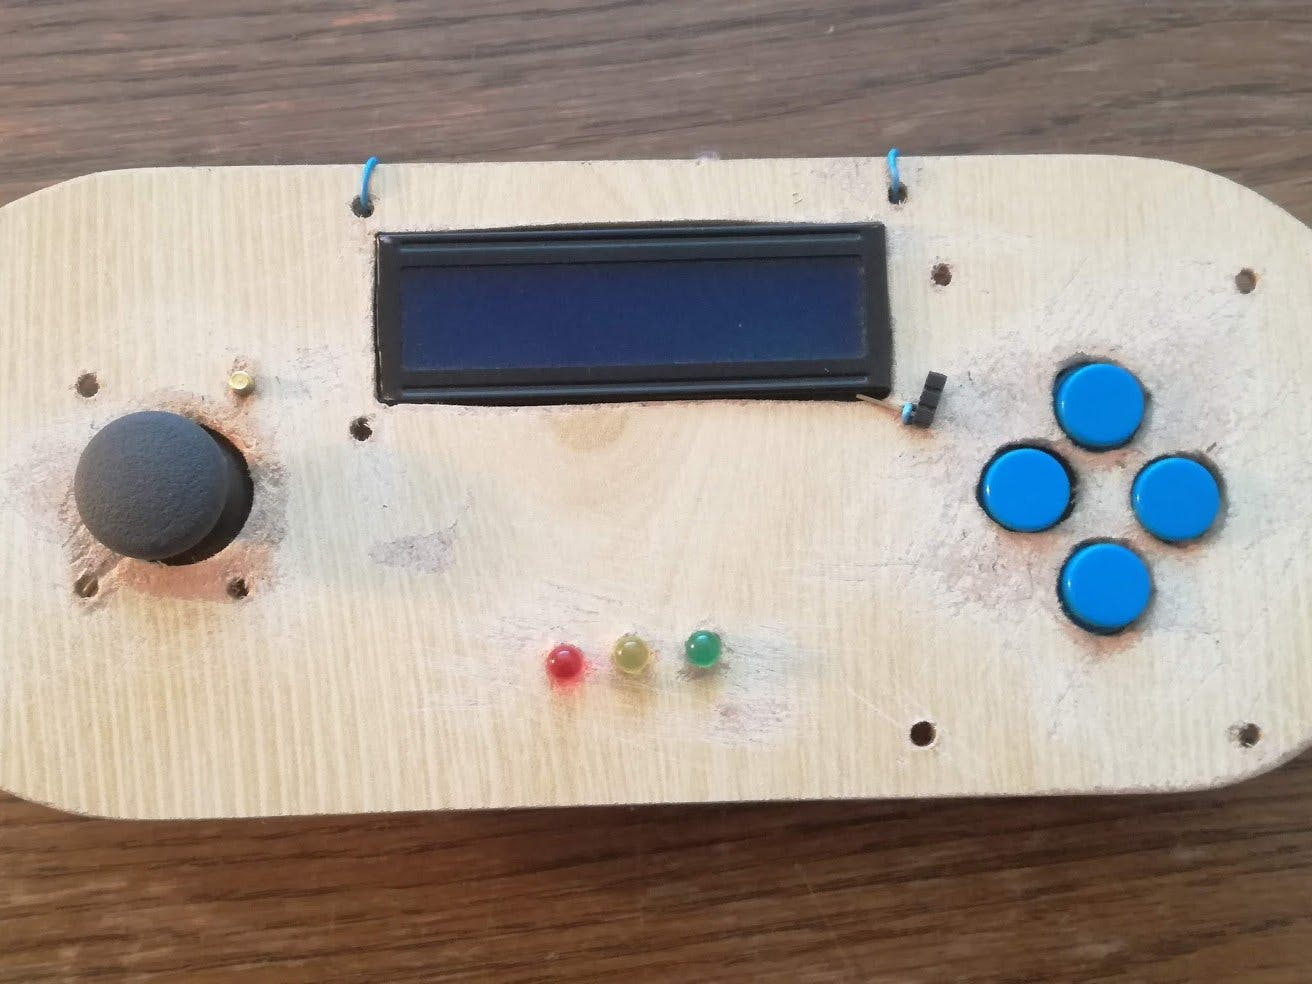 REAW the Arduino Game Controller